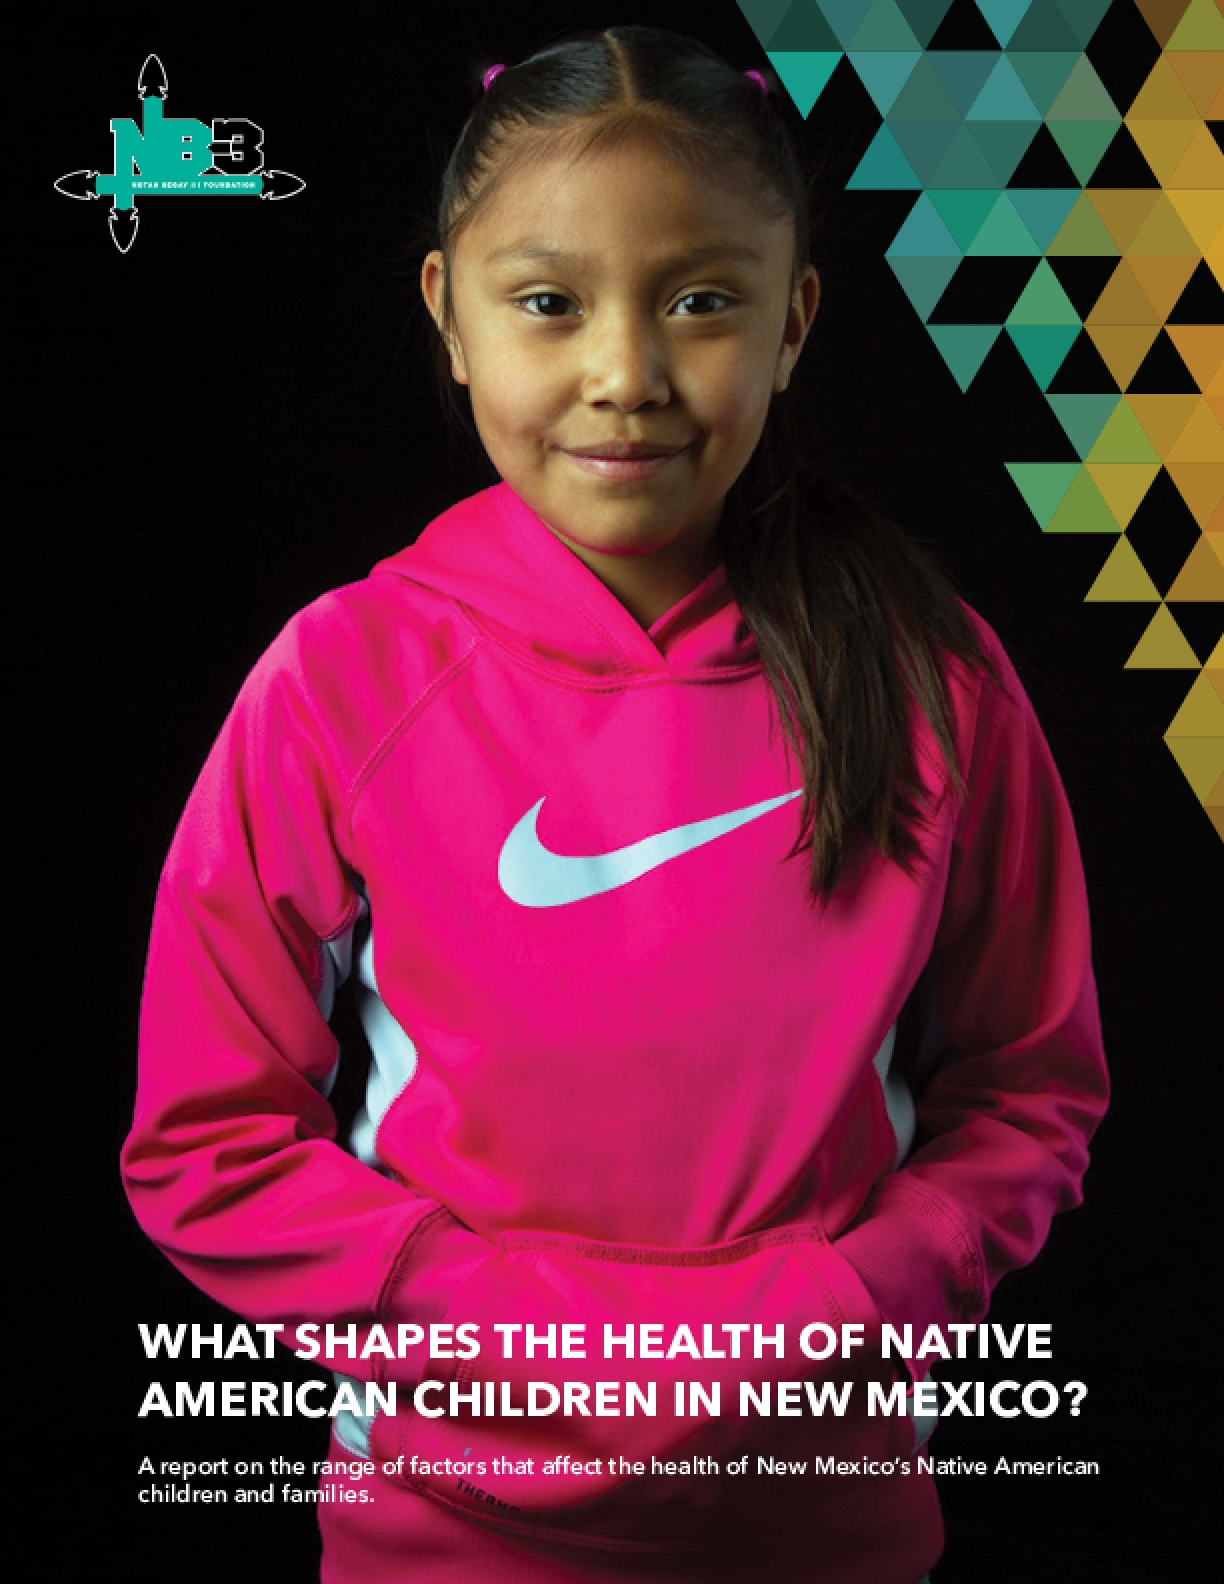 WHAT SHAPES THE HEALTH OF NATIVE AMERICAN CHILDREN IN NEW MEXICO? A report on the range of factors that affect the health of New Mexico's Native American children and families.